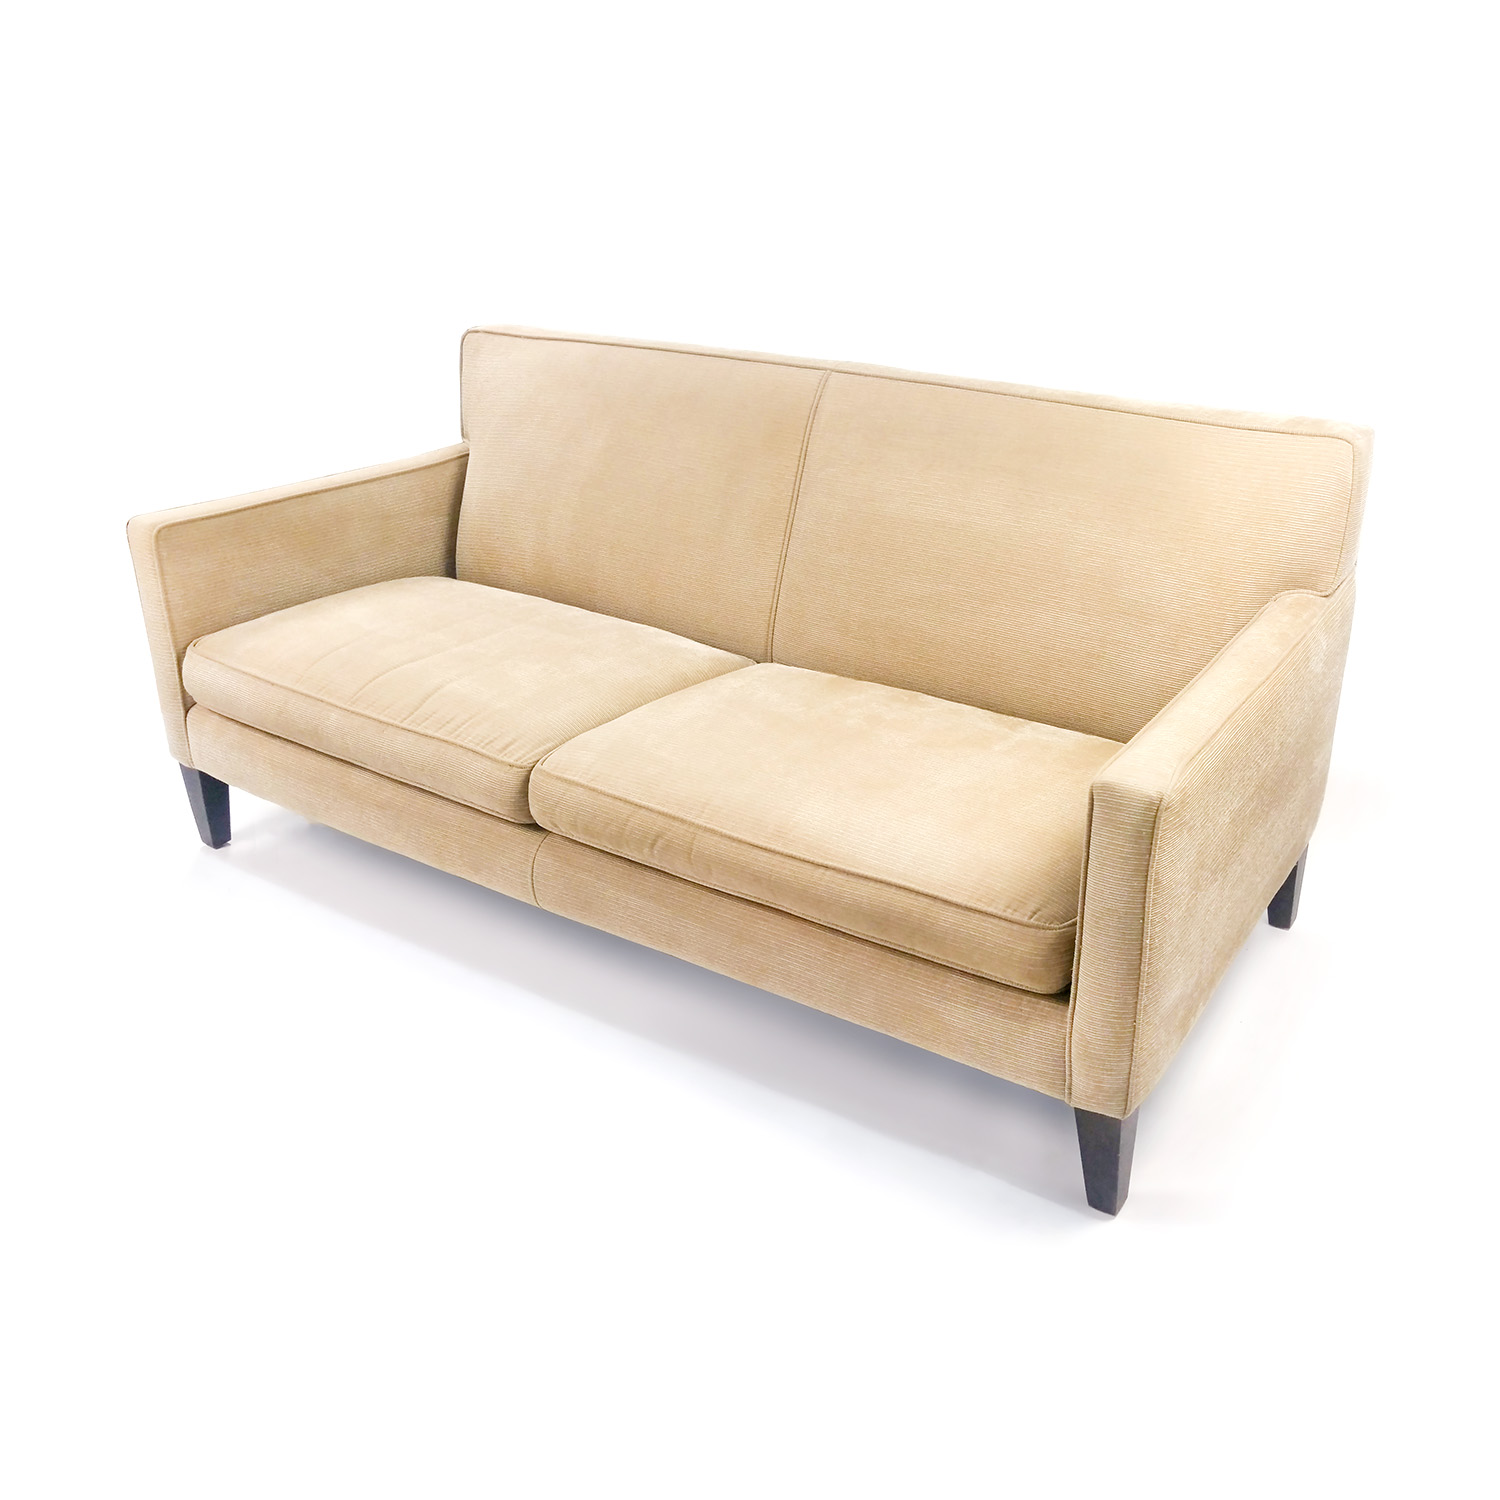 50% OFF - Crate and Barrel Crate and Barrel Couch / Sofas